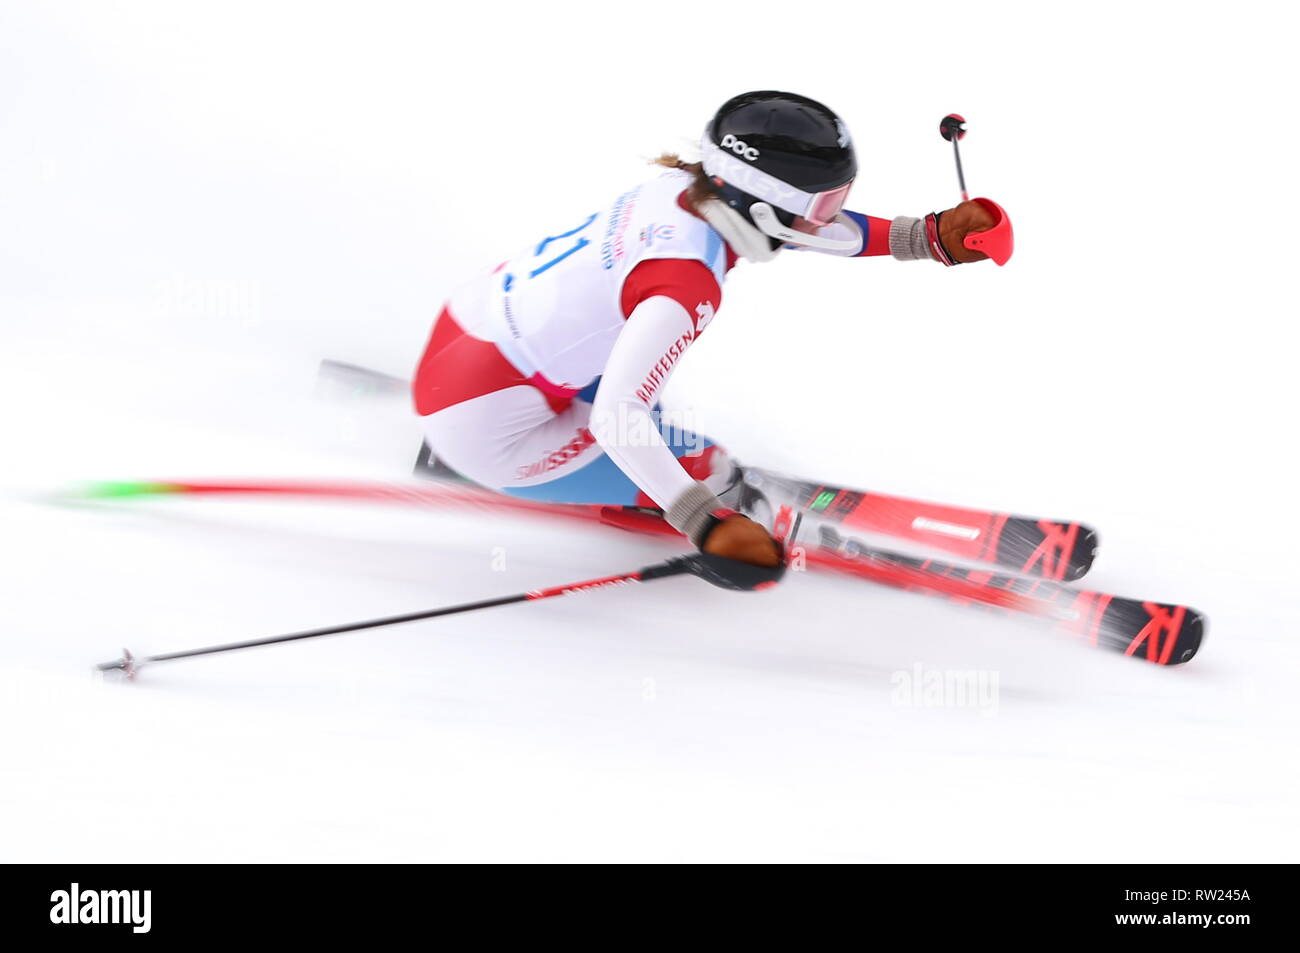 Krasnoyarsk, Russia. 04th Mar, 2019. KRASNOYARSK, RUSSIA - MARCH 4, 2019: Skier Anne-Sophie Loretan of Switzerland competes in the ladies' Alpine combined slalom event at Bobrovy Log Funpark as part of the 2019 Winter Universiade. Mikhail Tereshchenko/TASS Credit: ITAR-TASS News Agency/Alamy Live News - Stock Image